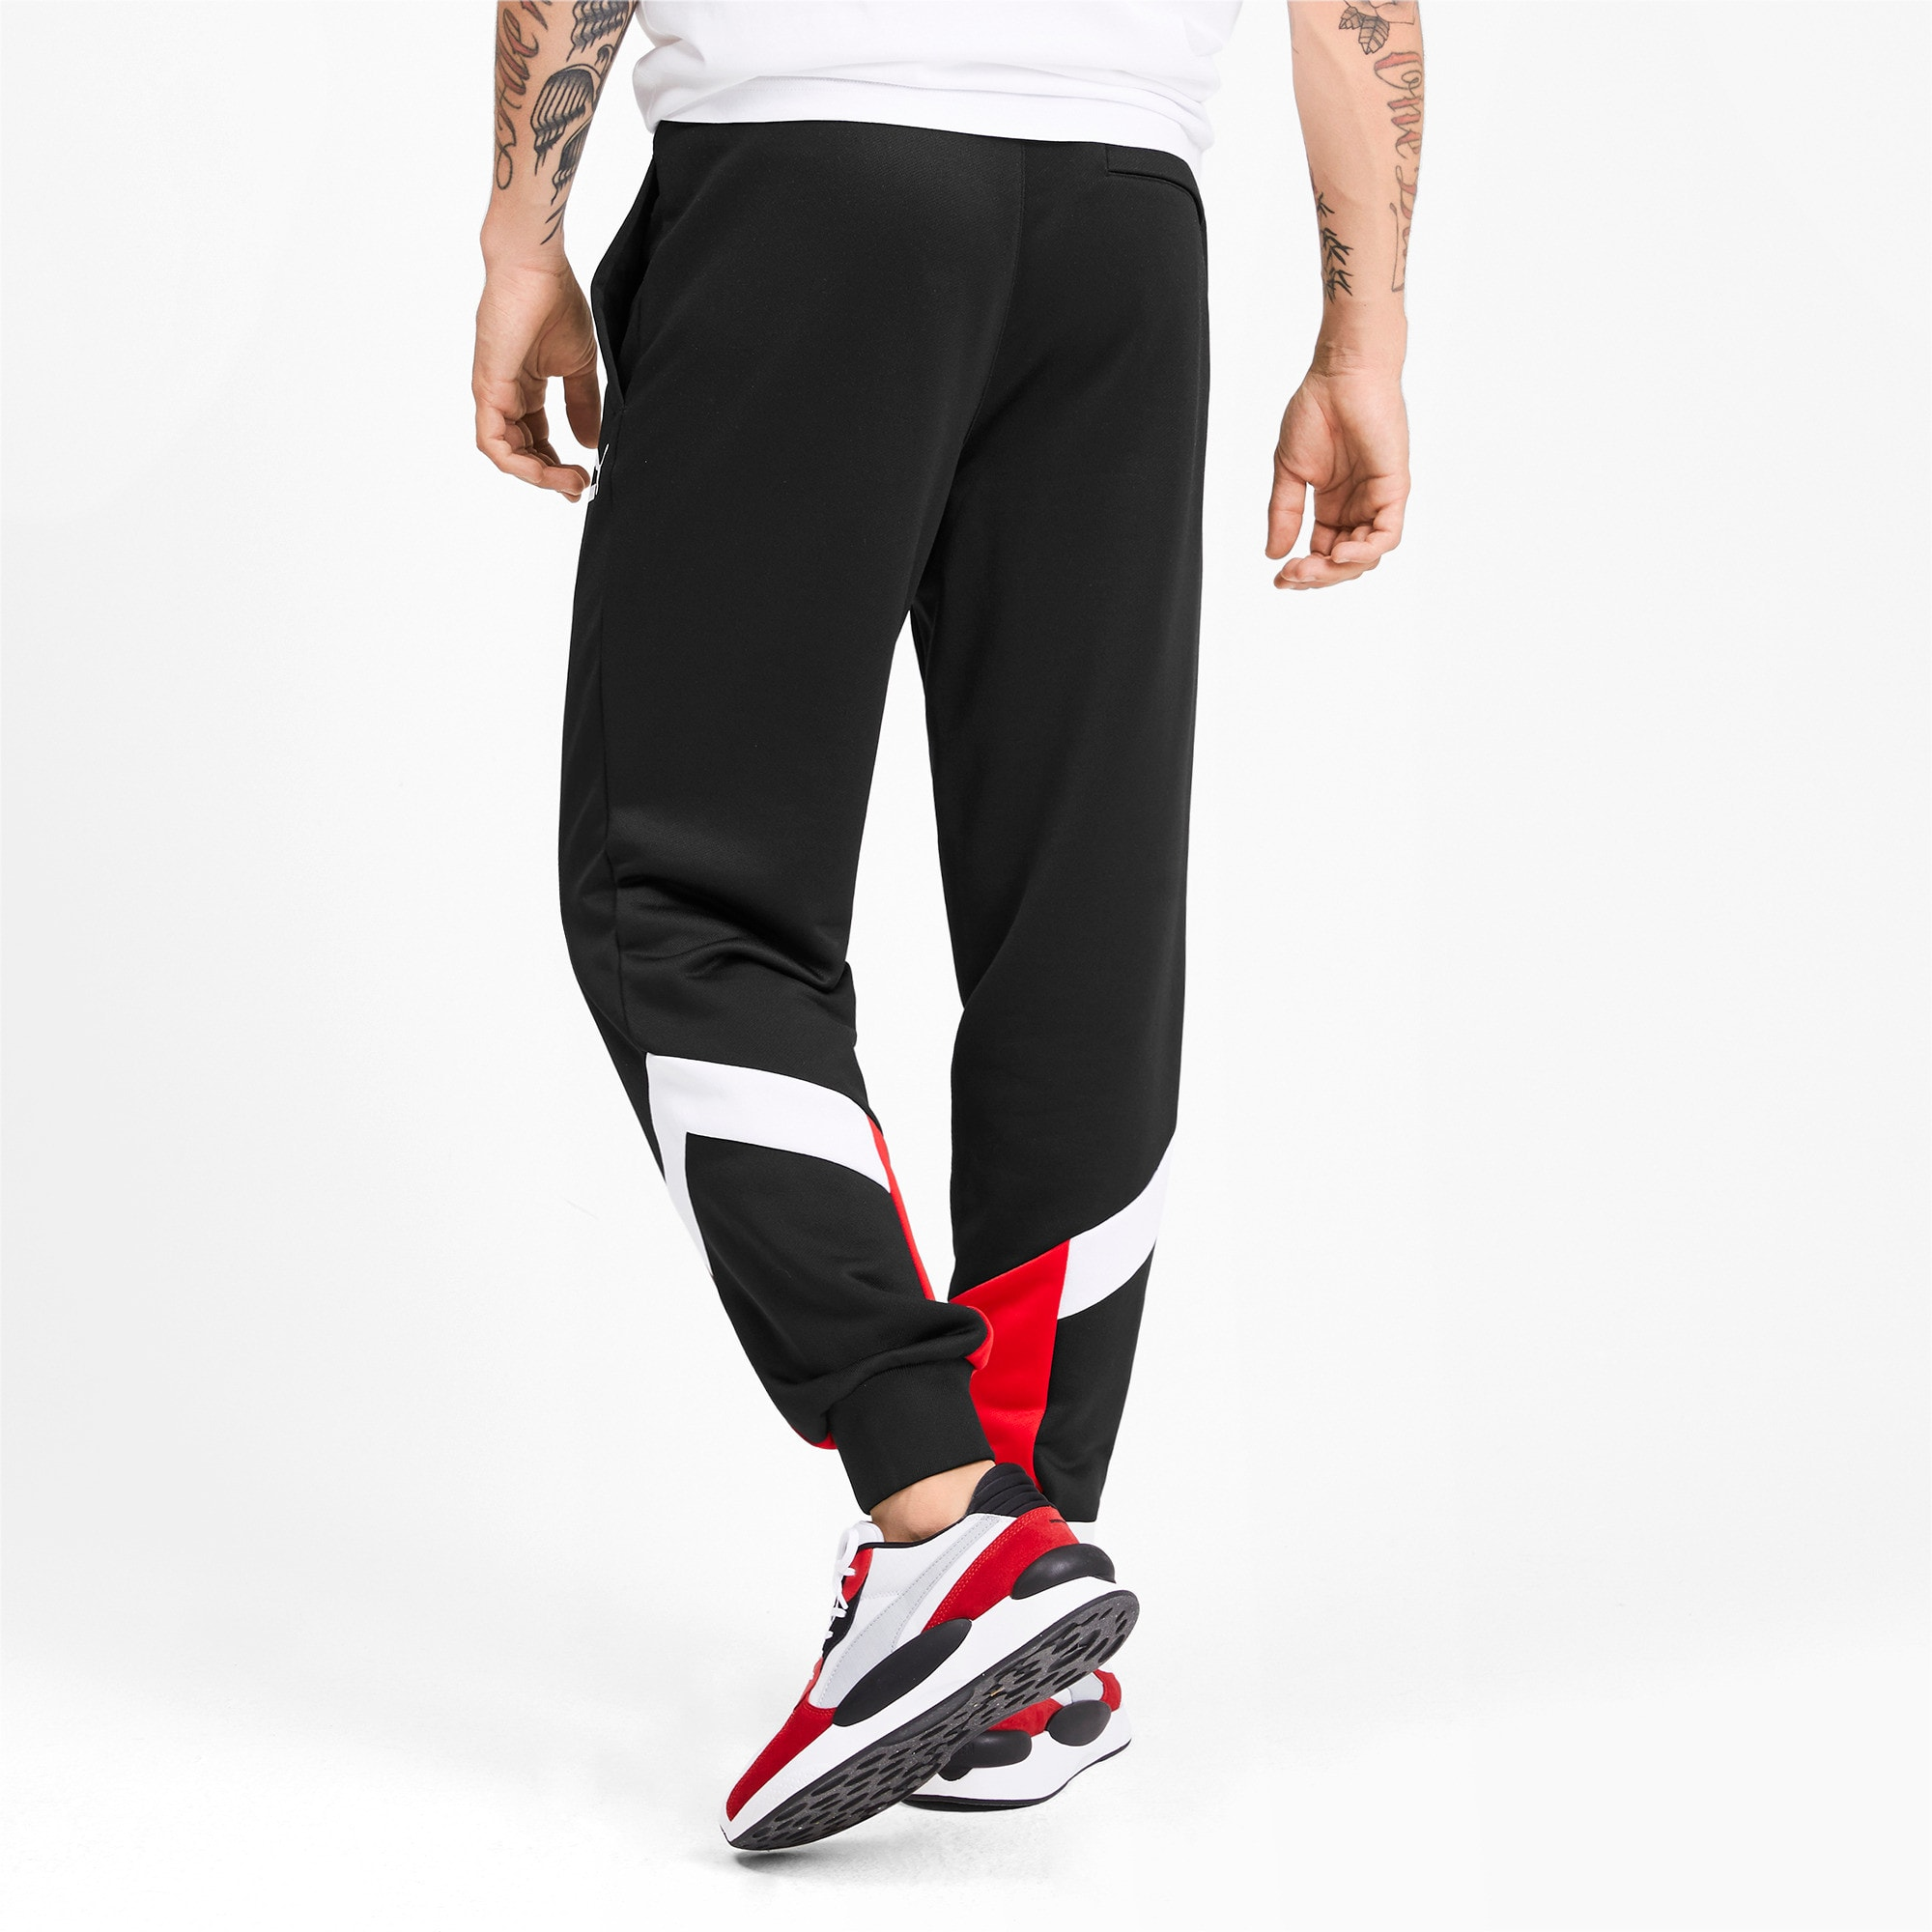 Thumbnail 2 of Iconic MCS Herren Gestrickte Trainingshose, Puma Black-Red combo, medium